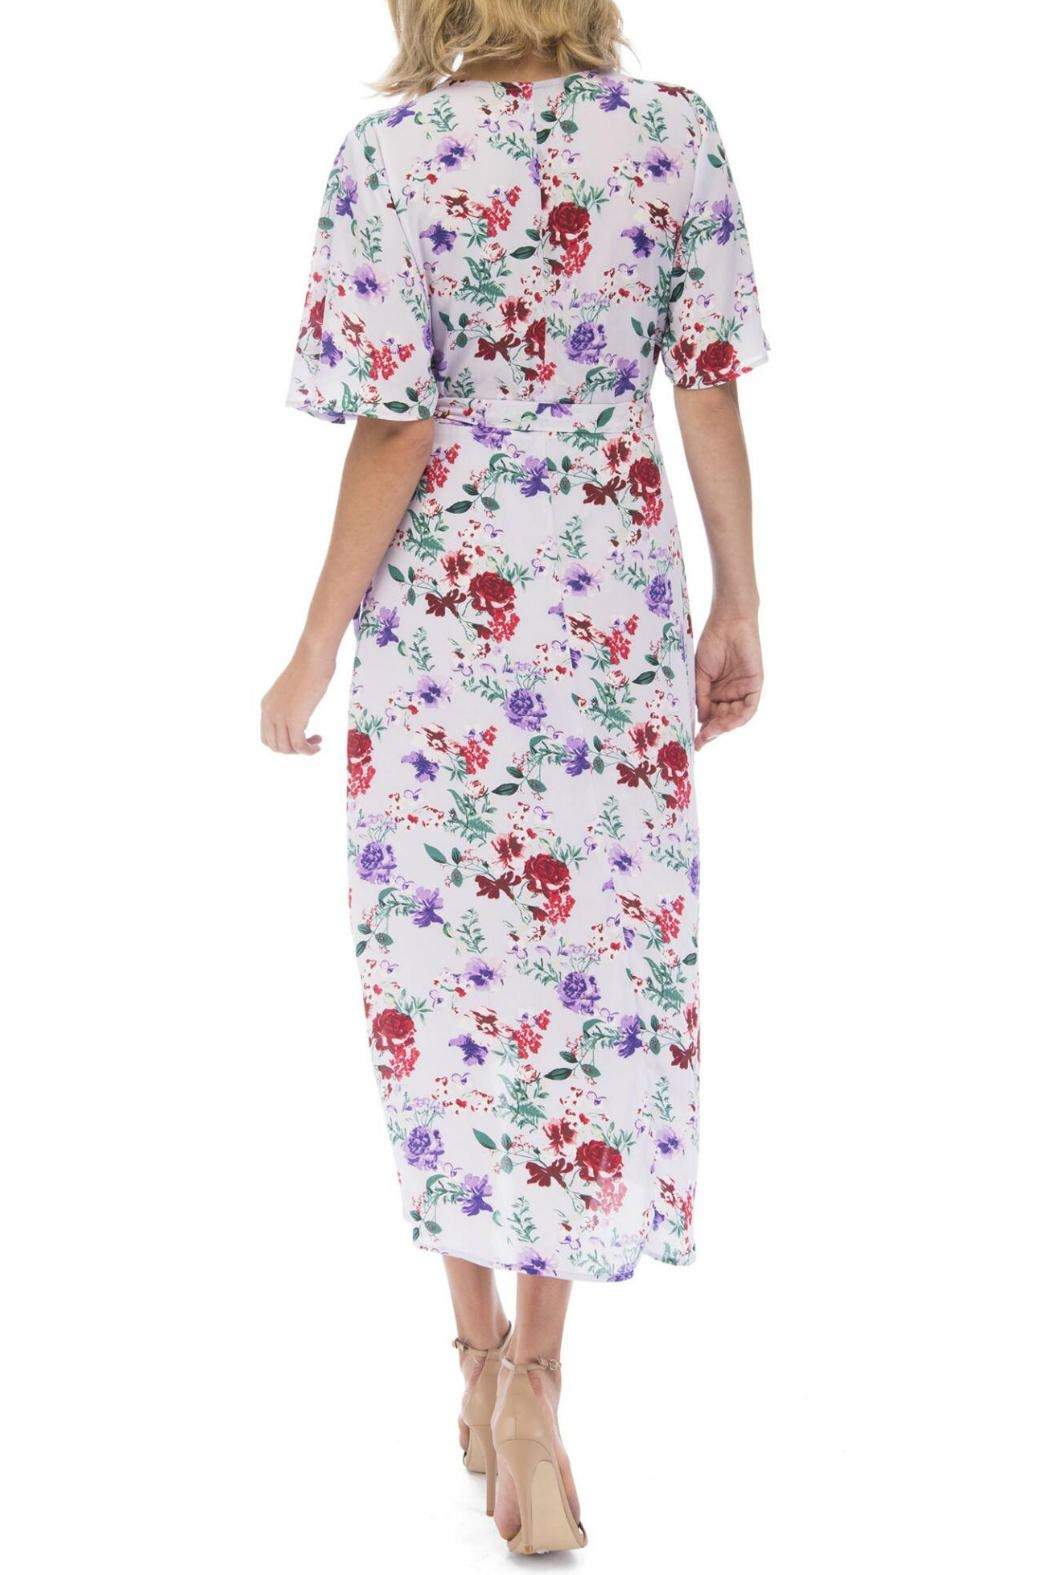 Bobeau Orna Floral Wrap-Dress - Front Full Image